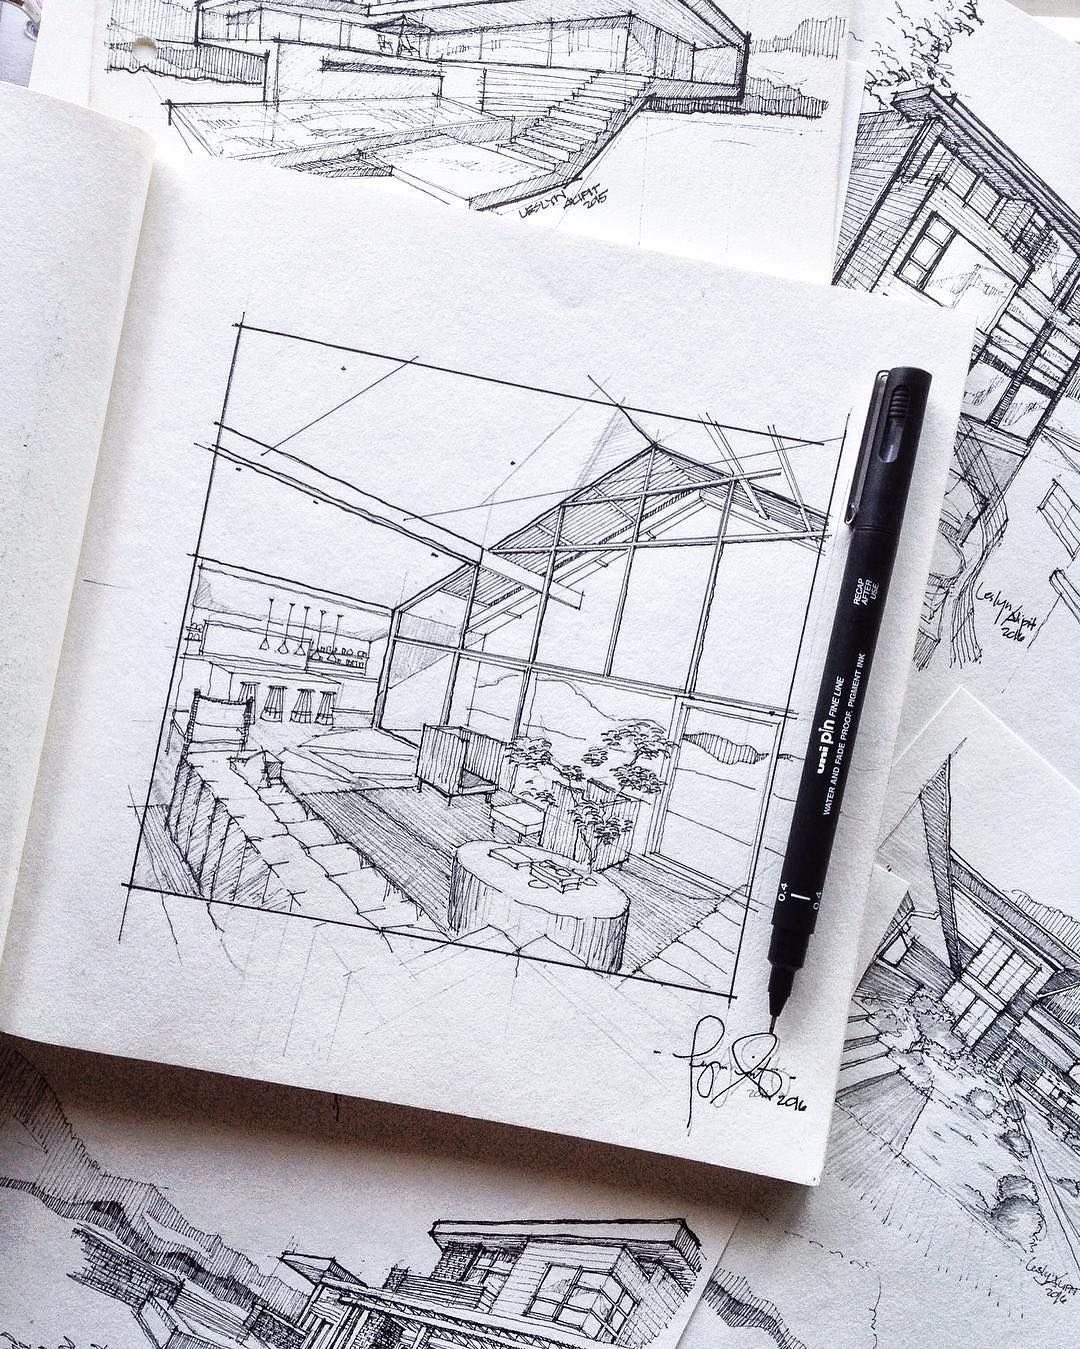 Instagram | Architecture sketchbook, Architecture drawing, Architecture  sketch